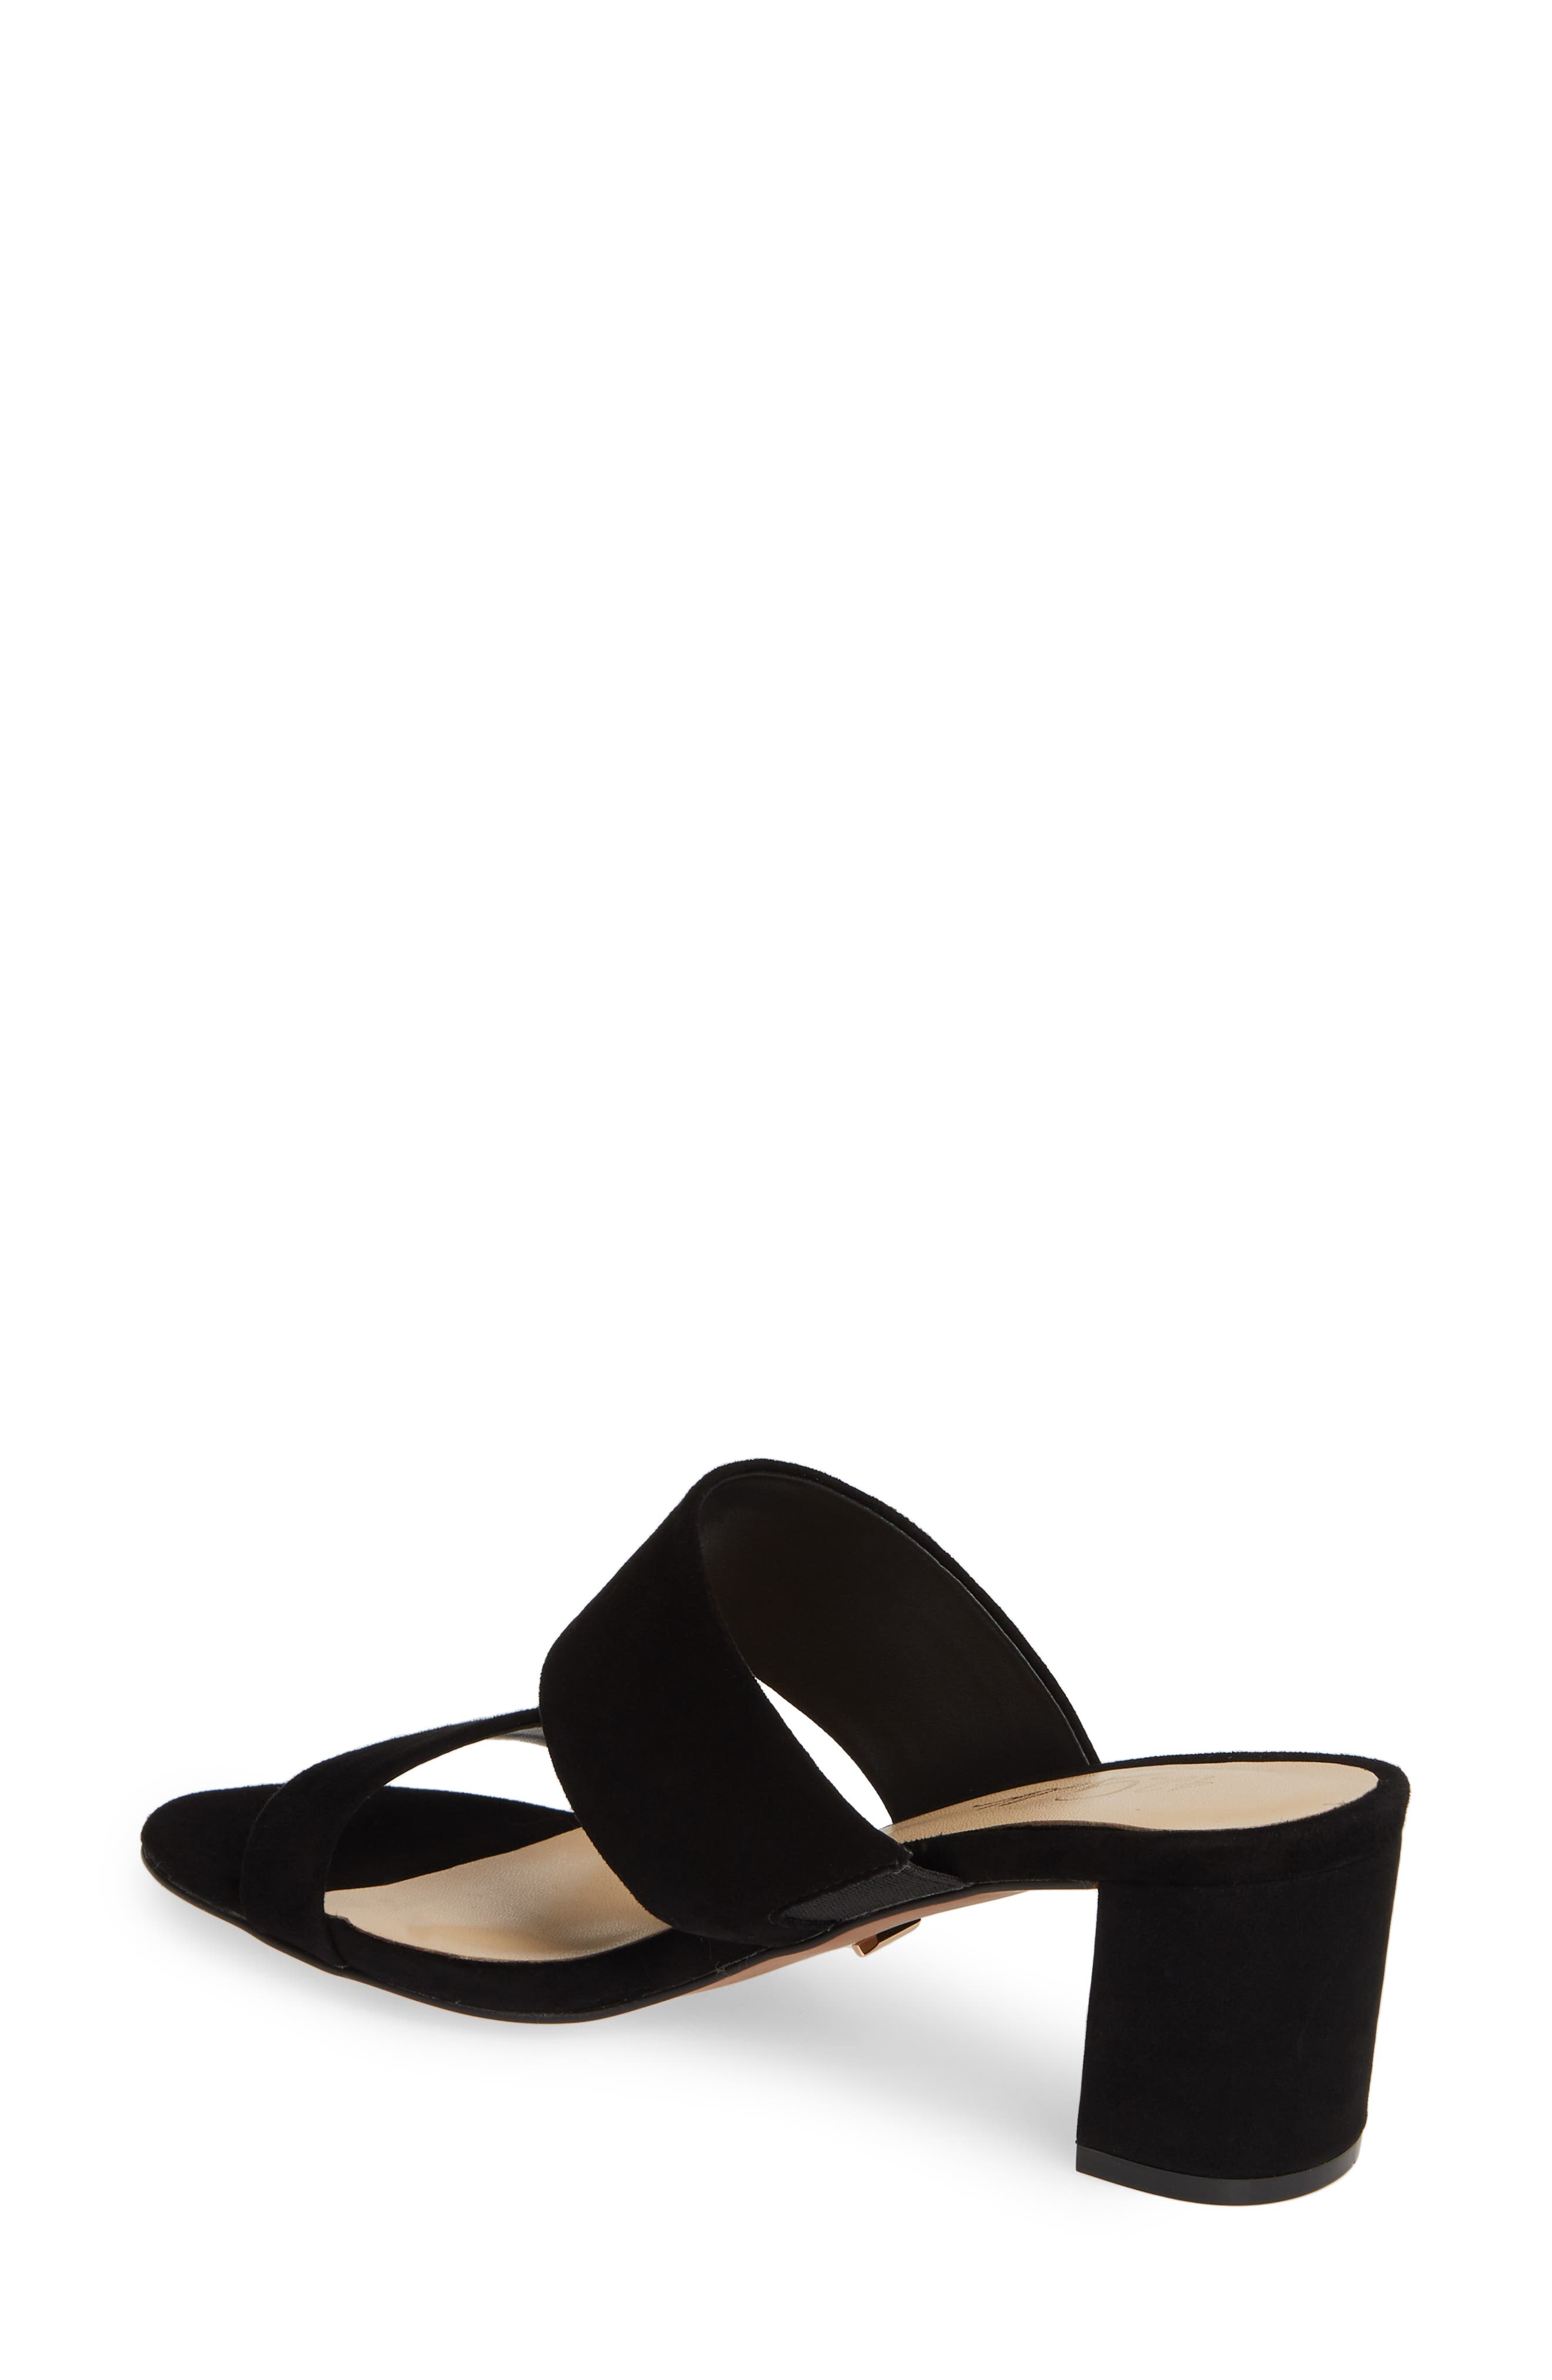 42 GOLD,                             Liya Slide Sandal,                             Alternate thumbnail 2, color,                             BLACK SUEDE